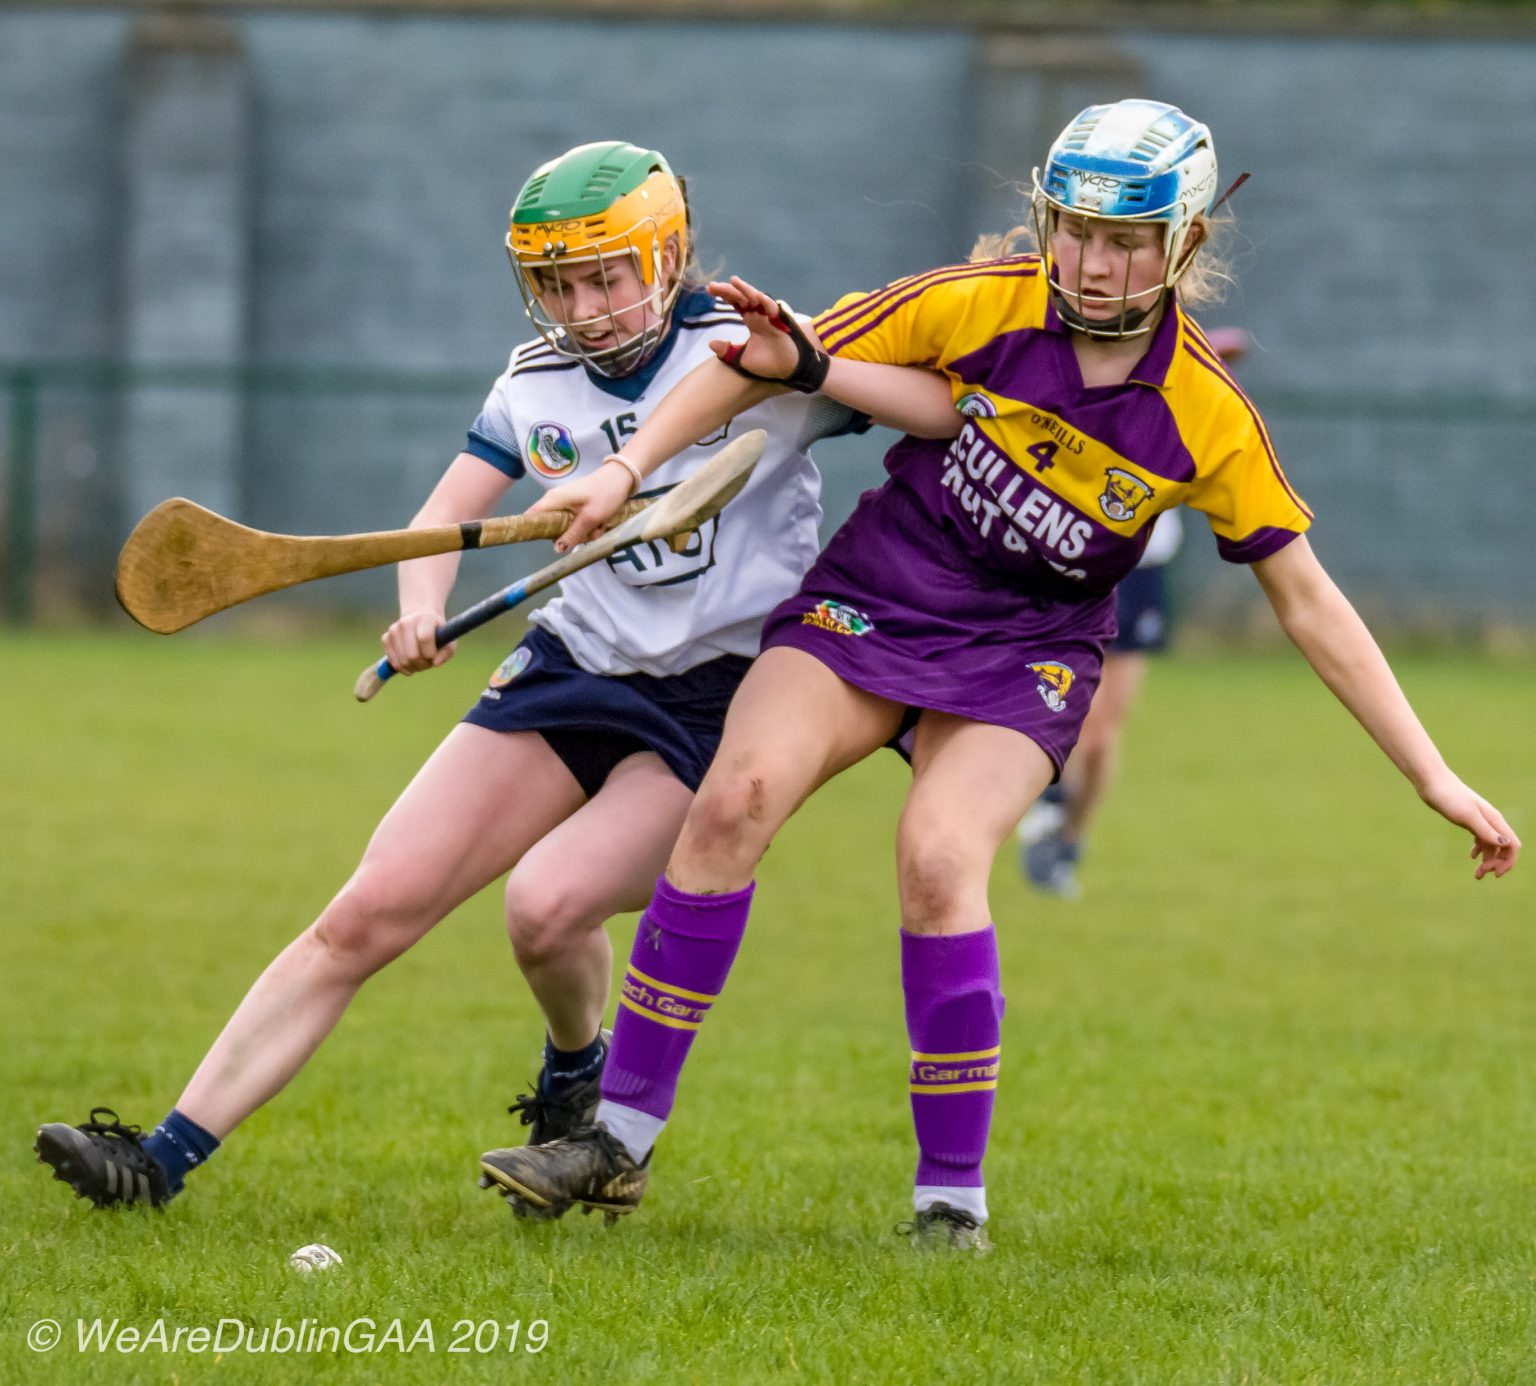 Dublin Camogie player in a white jersey, navy skort and yellow and green helmet battles for the ball with a Wexford player in purple jersey, purple skort and white and blue helmet